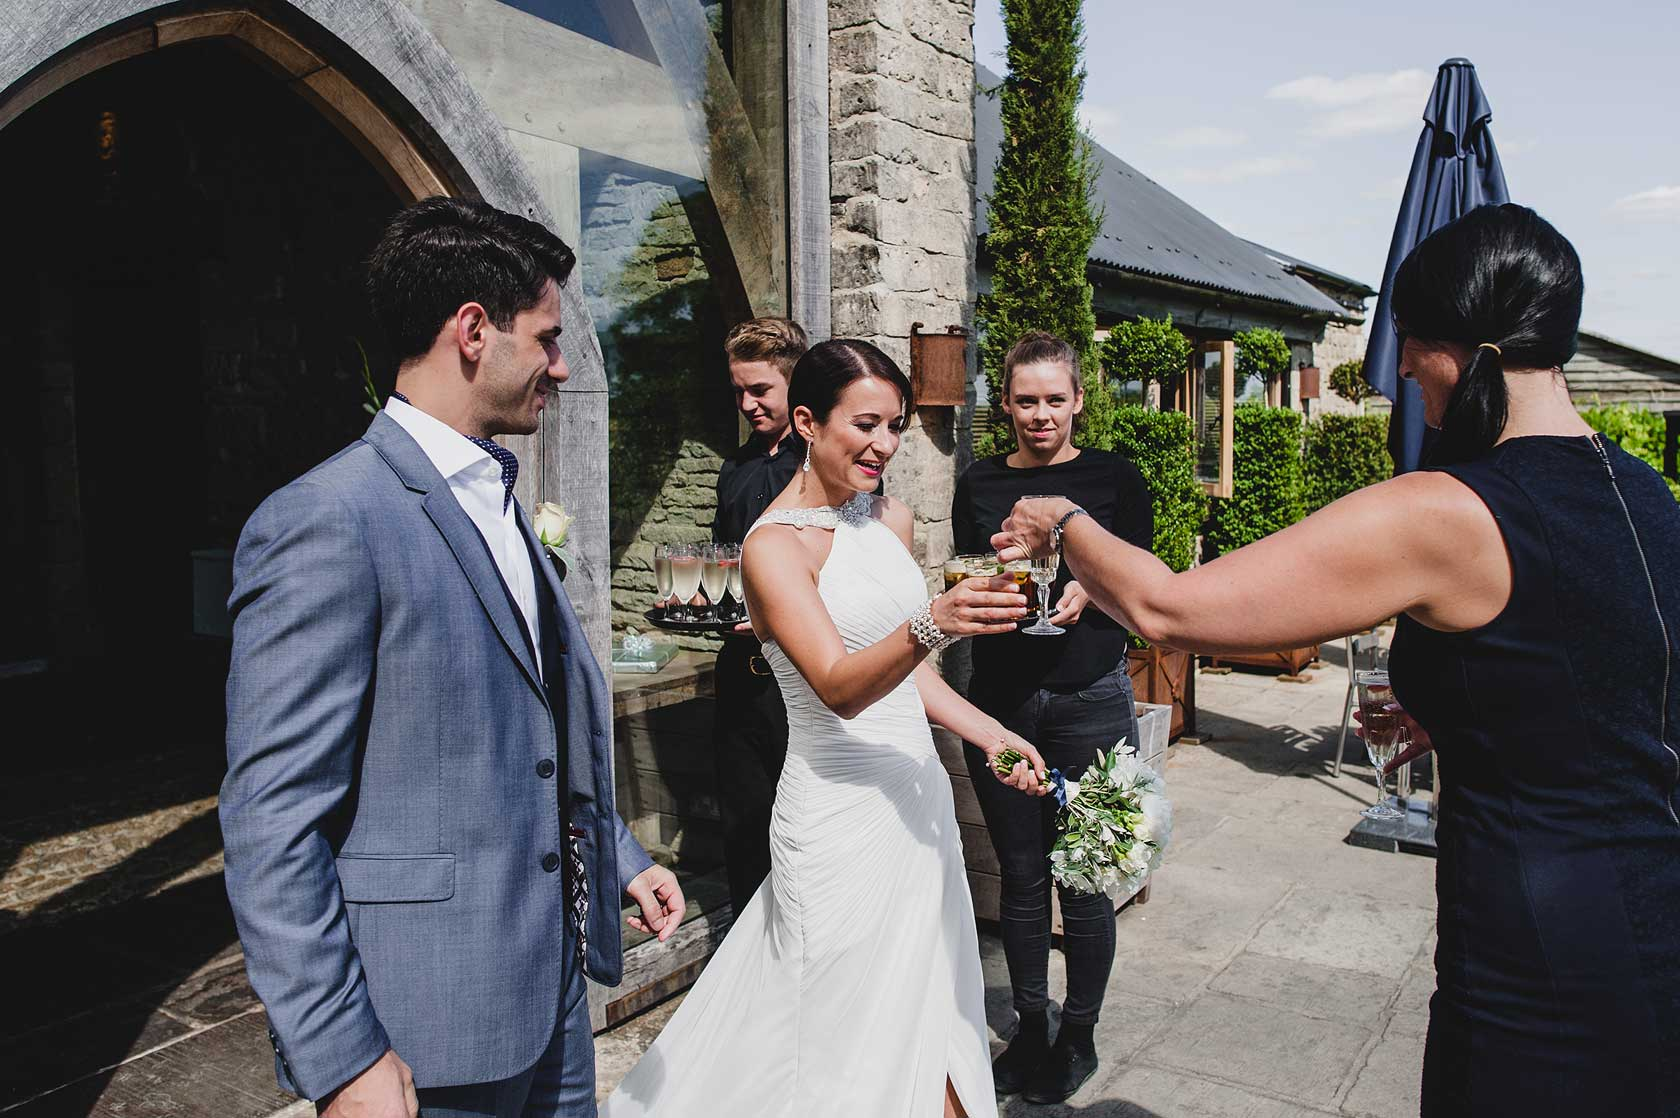 Reportage Wedding Photography in Cirencester